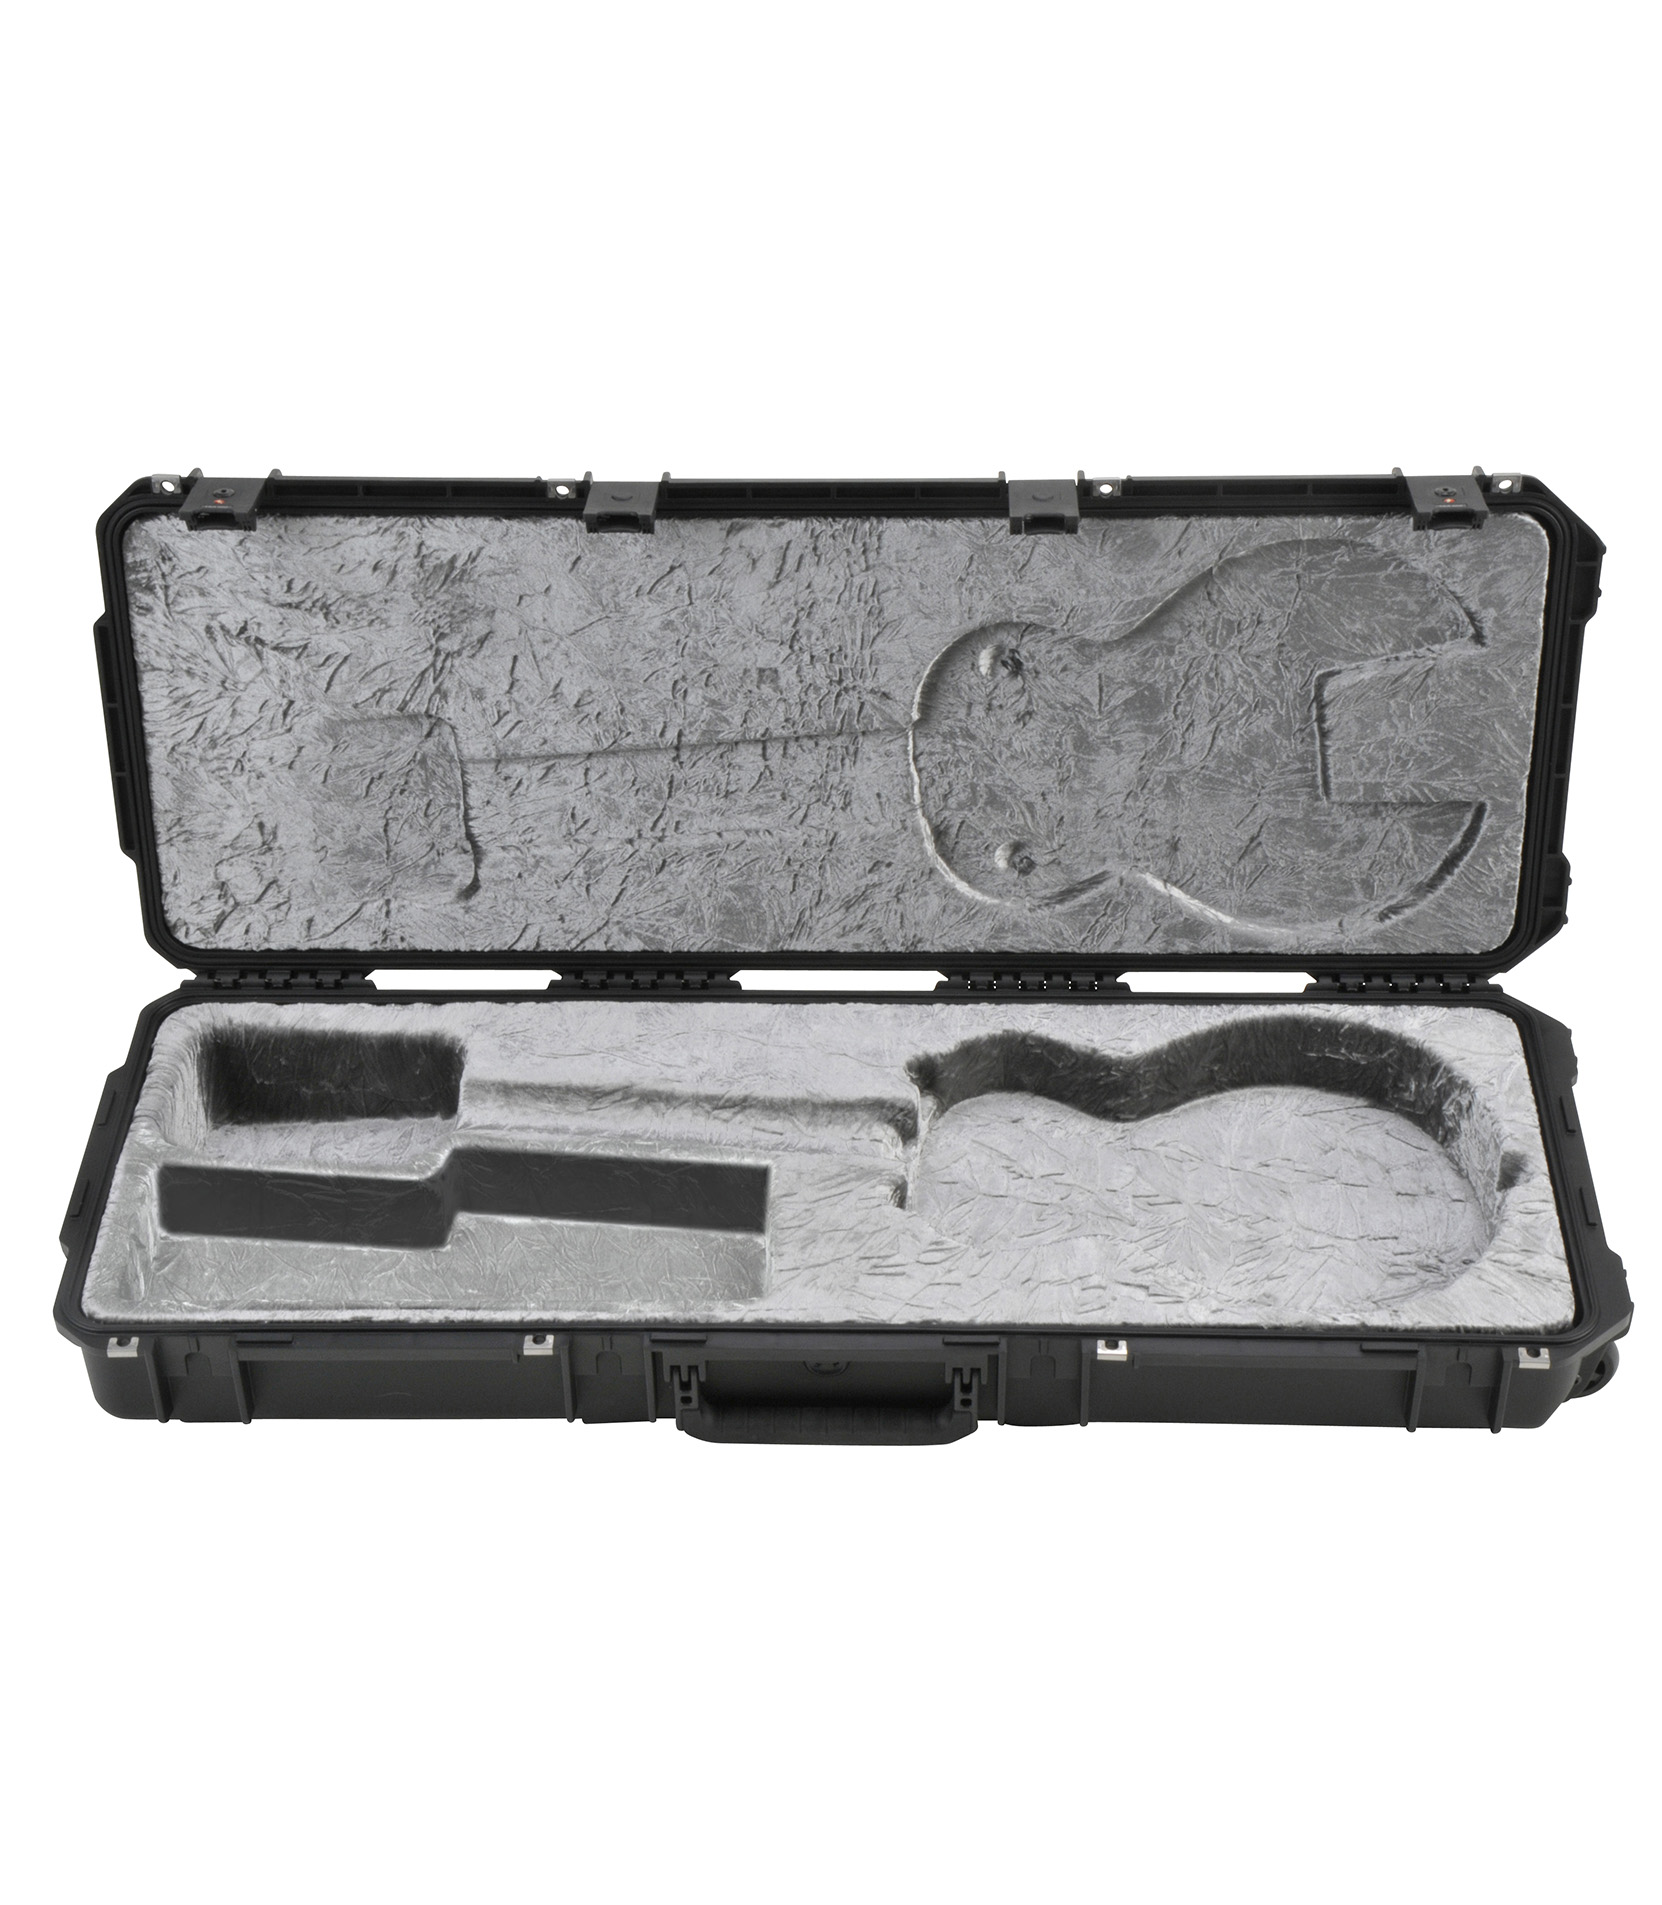 Melody House Musical Instruments Store - 3i 4214 56 Injection molded Les Paul Flight Case